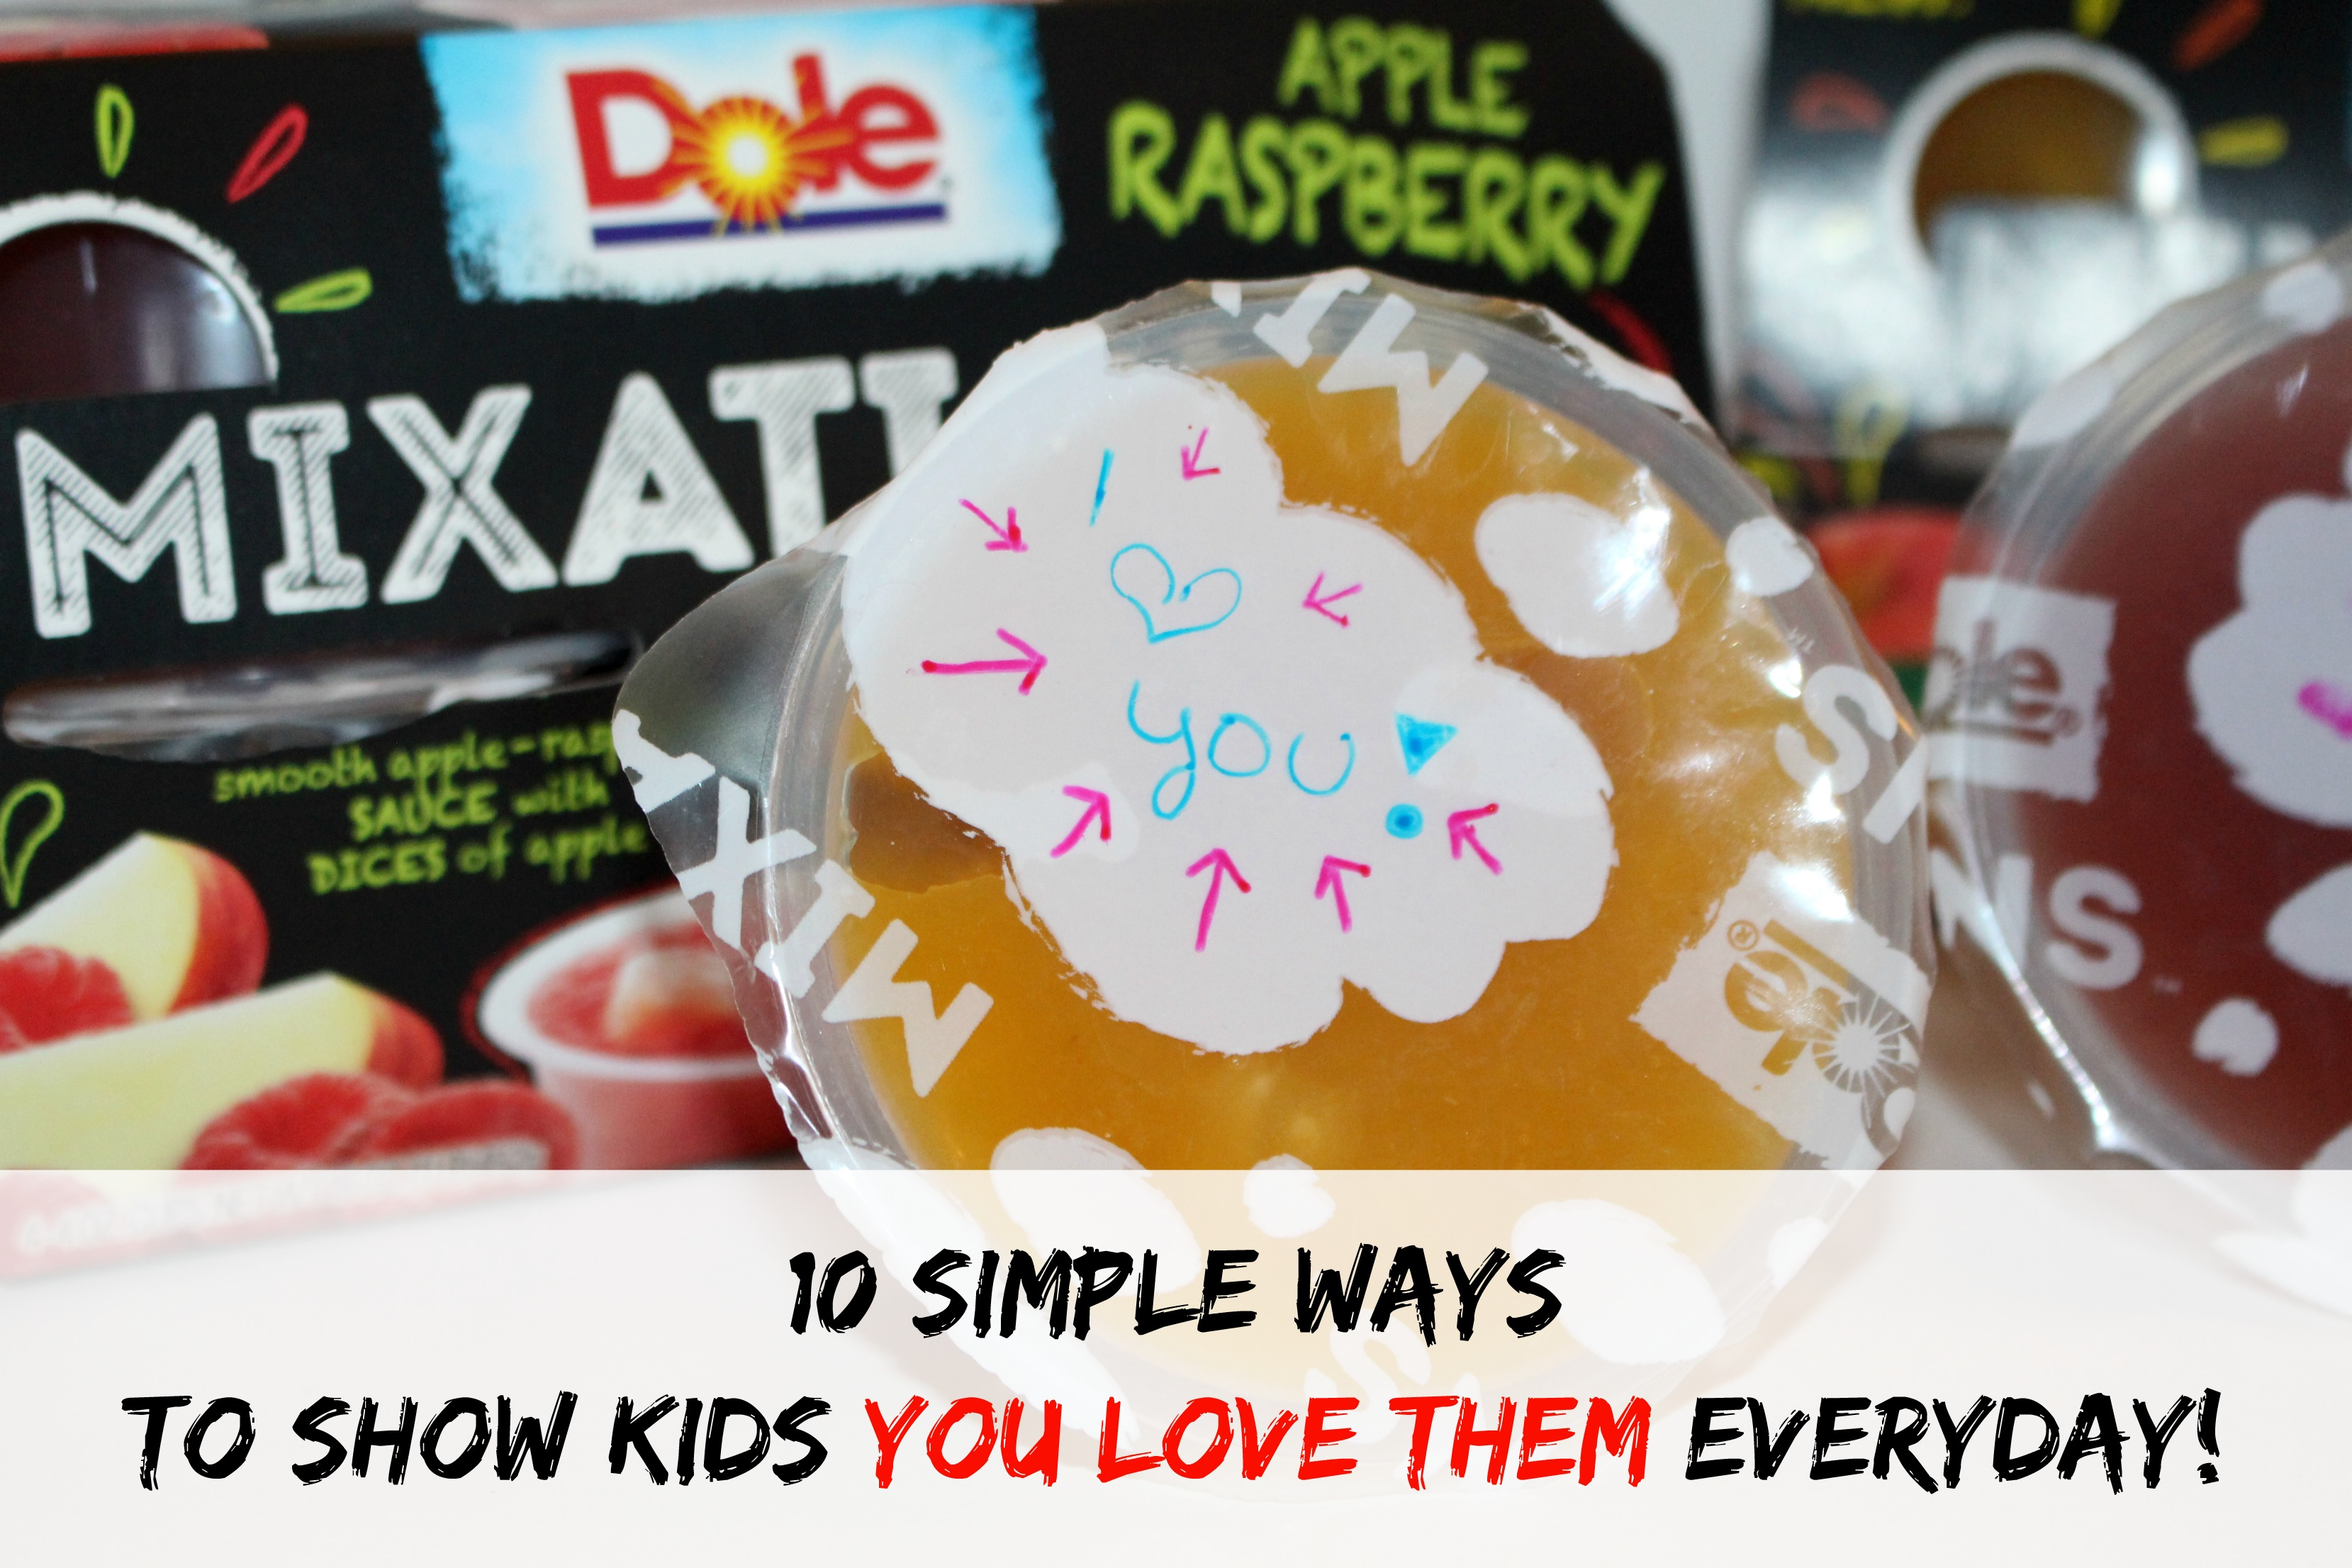 10 Simple Ways to Show Kids You Love Them Everyday